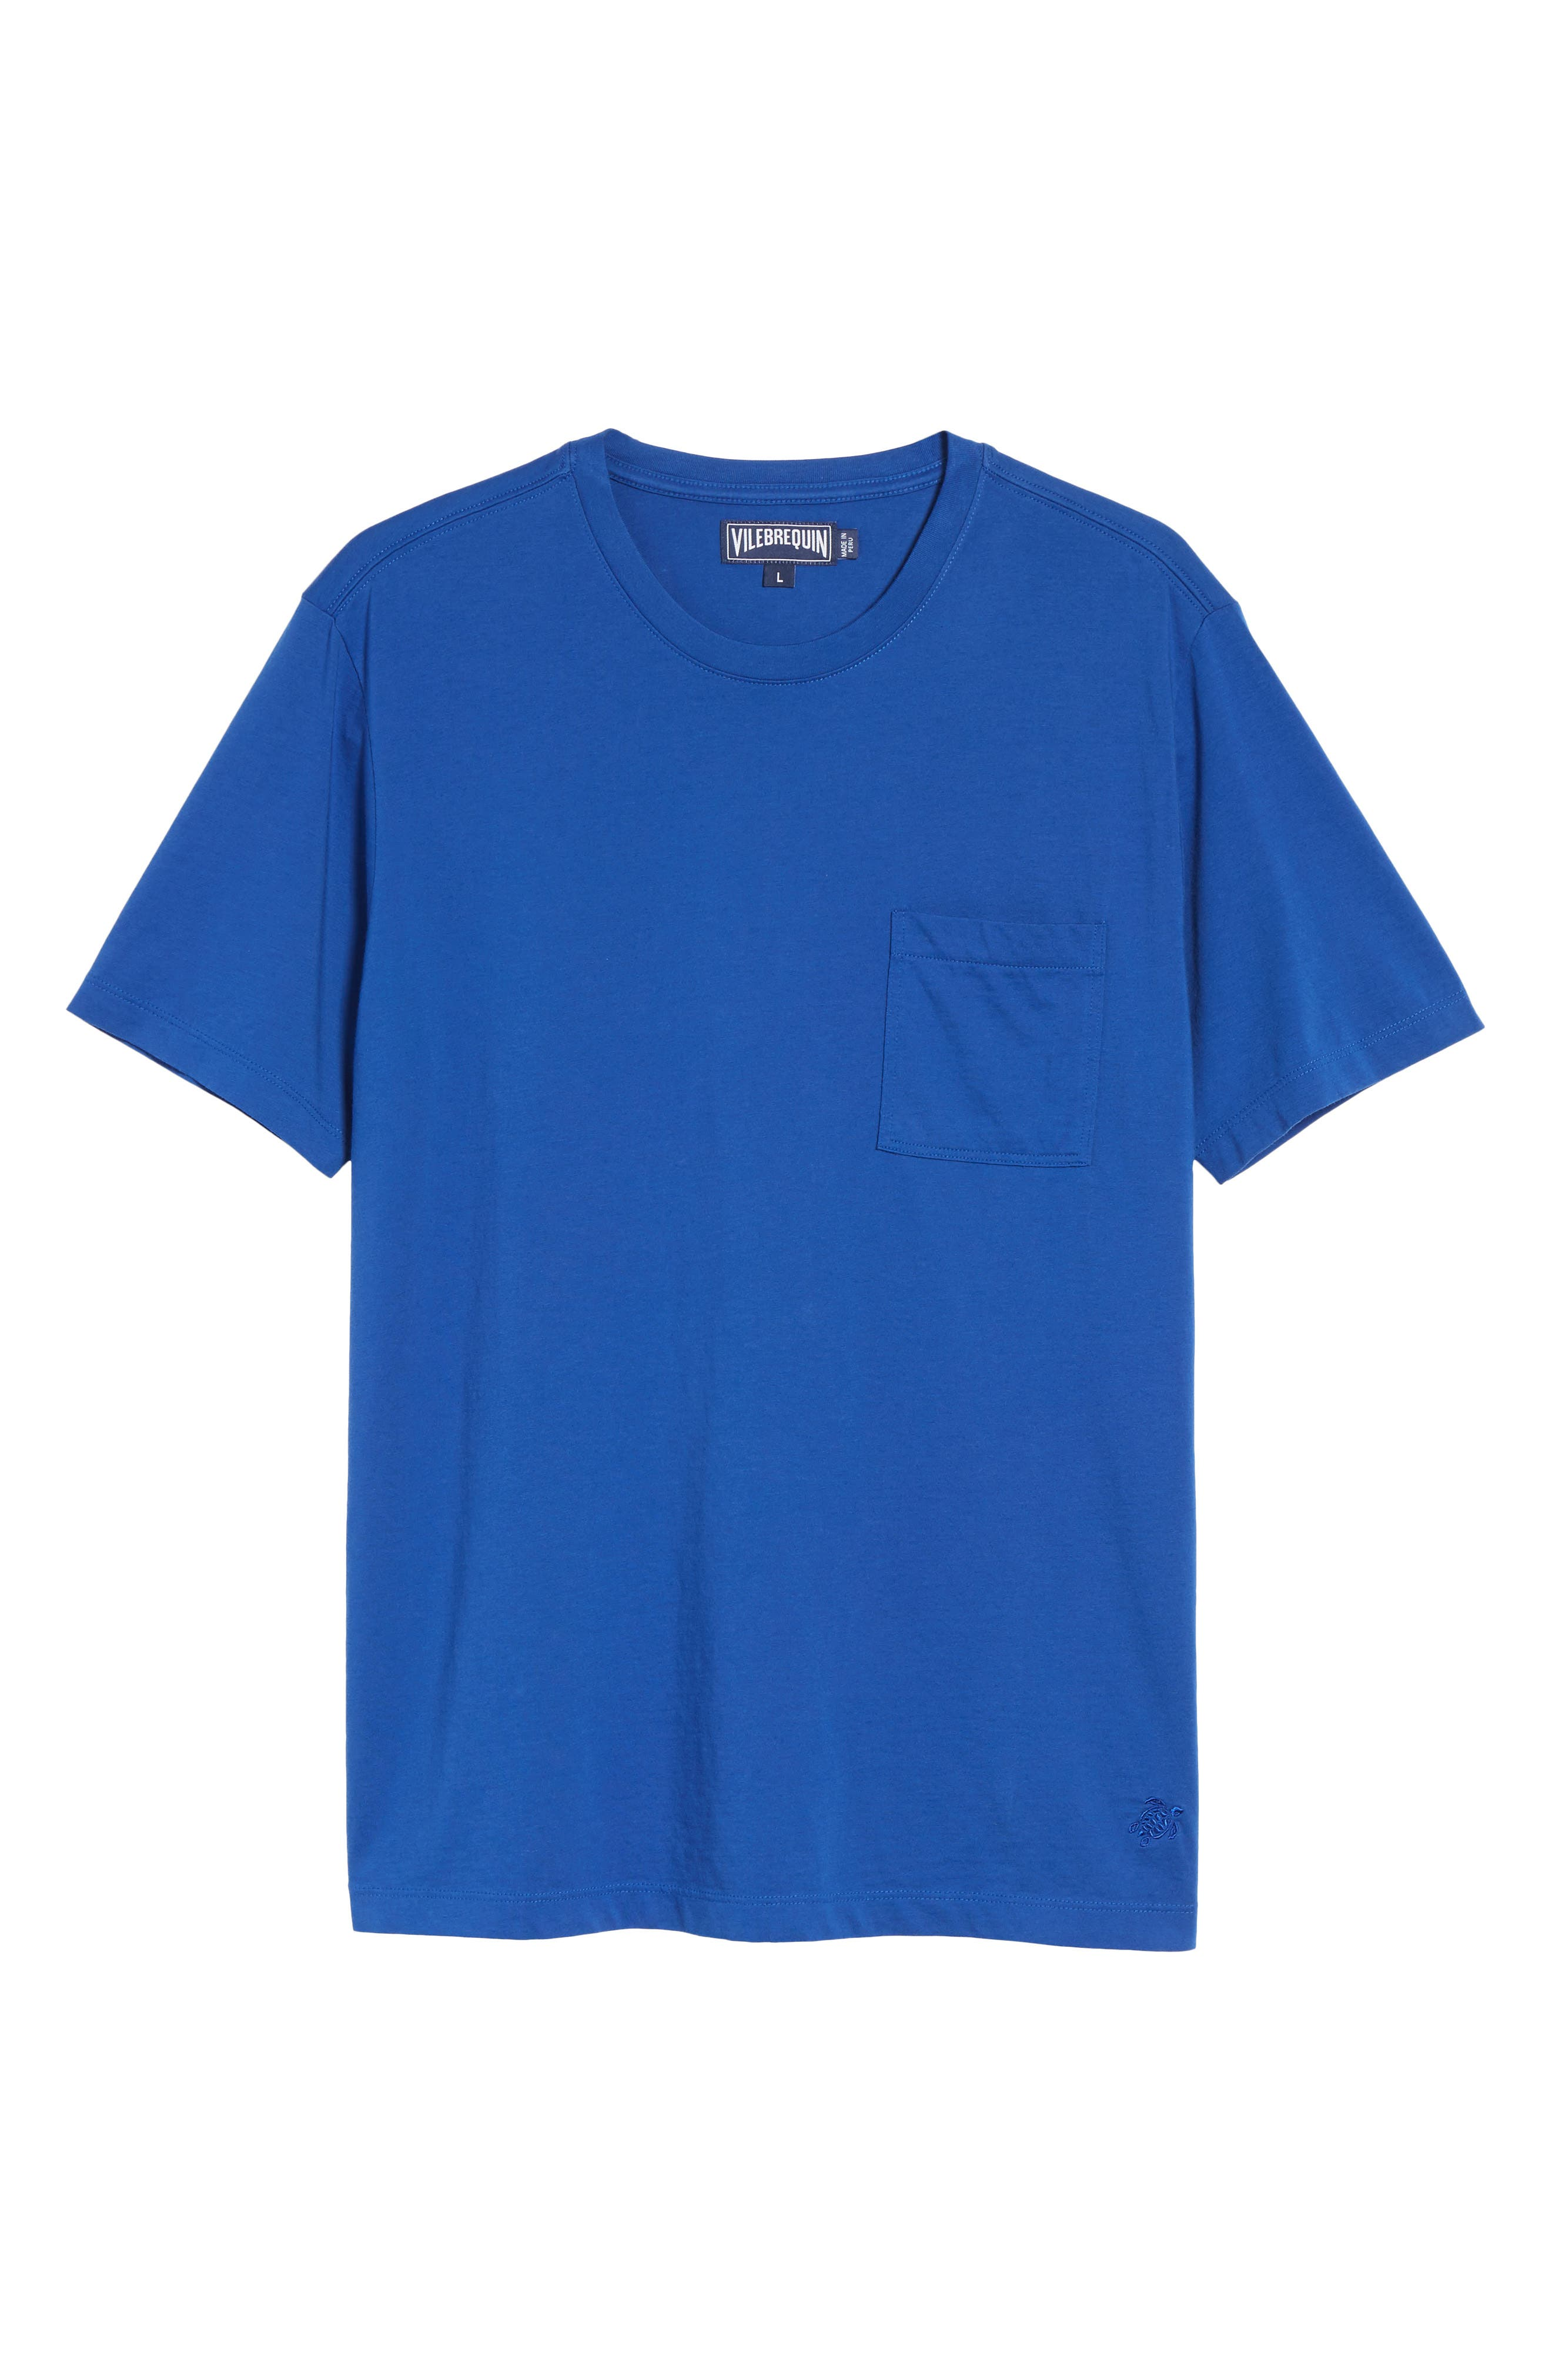 Alternate Image 6  - Vilebrequin Classic Fit Pocket T-Shirt